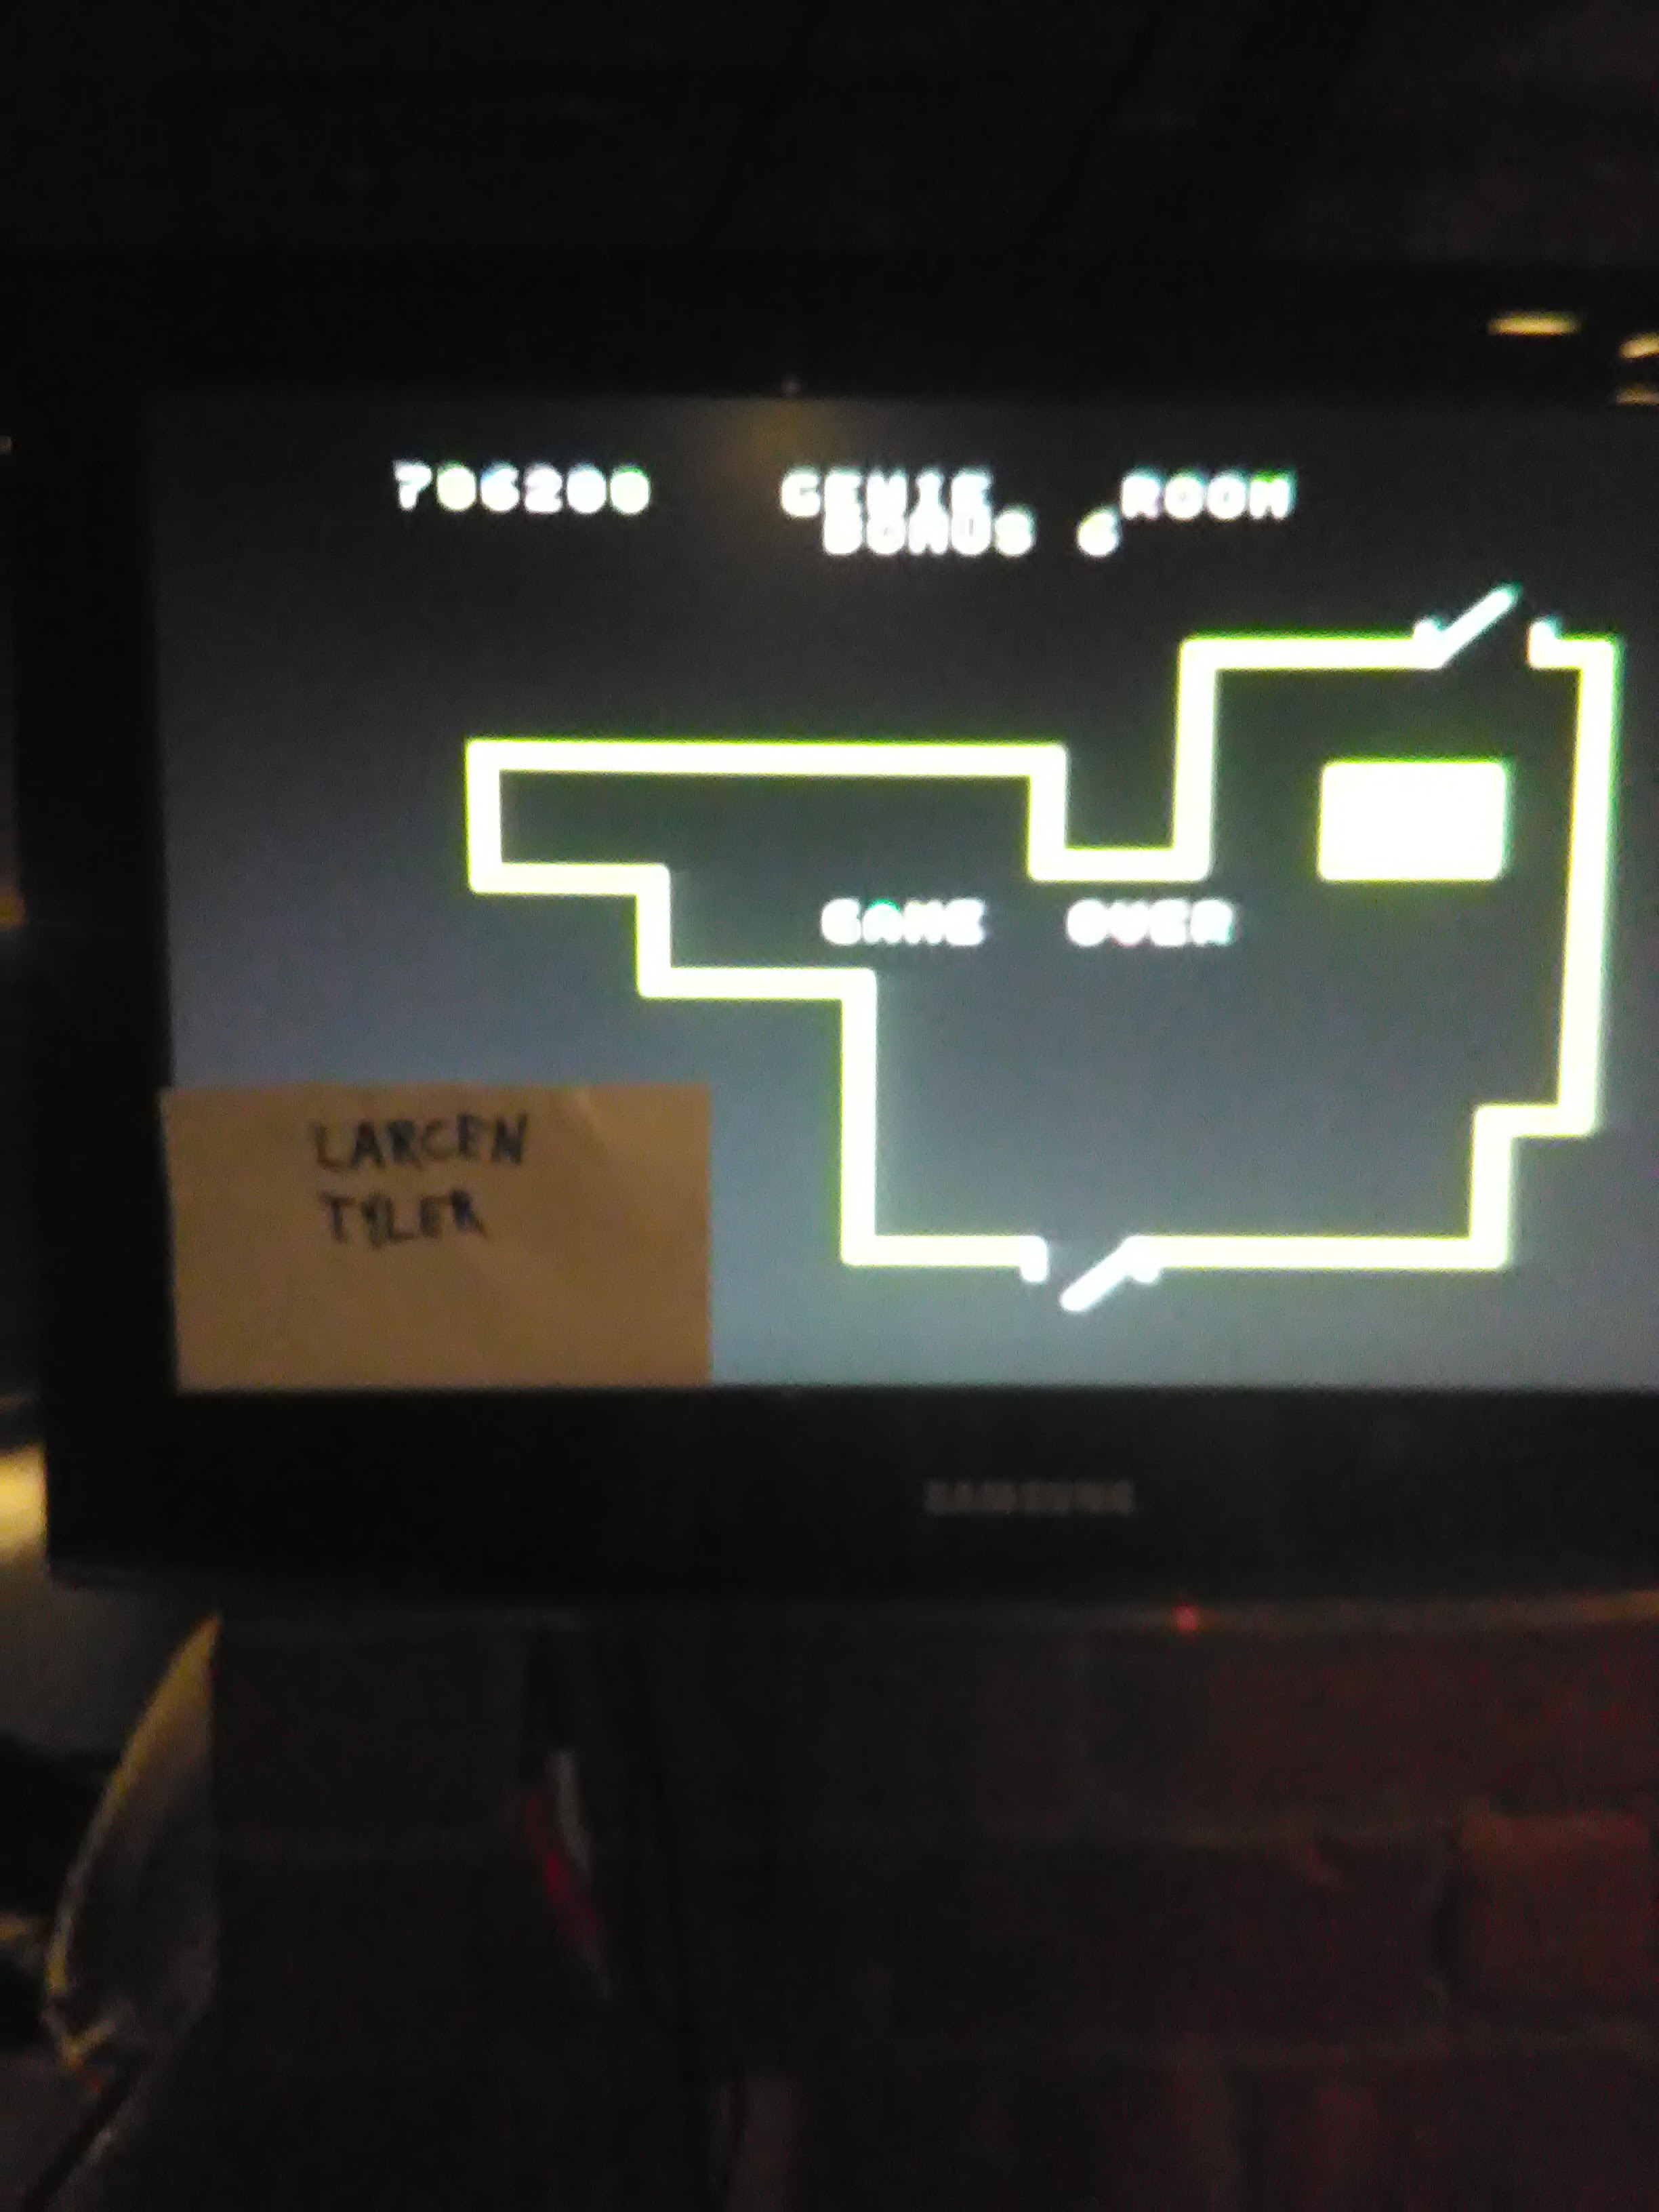 LarcenTyler: Venture (Colecovision Flashback) 706,200 points on 2016-07-22 18:37:49